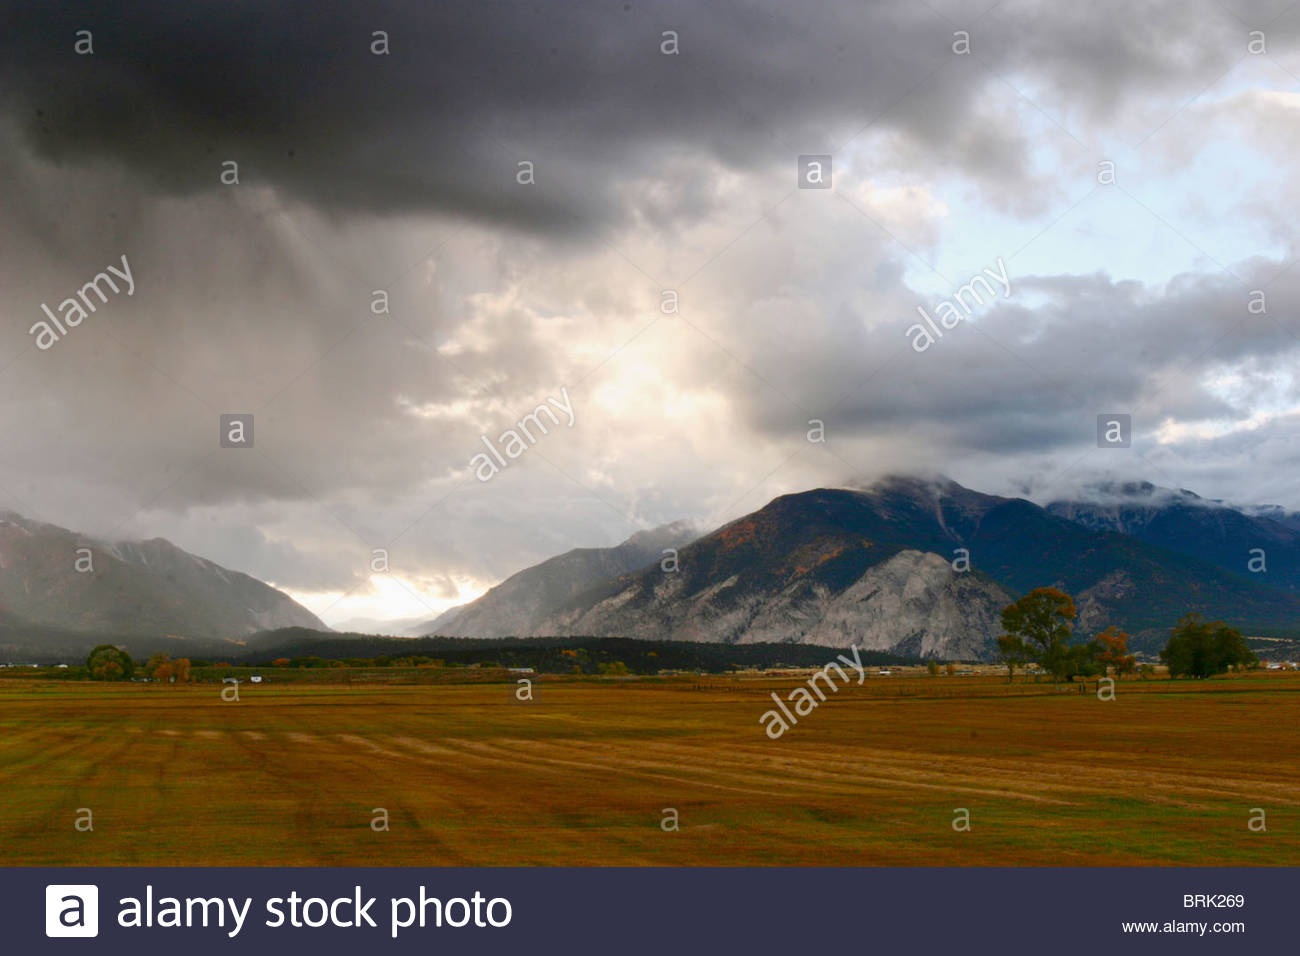 A storm builds in the Colorado high country. - Stock Image